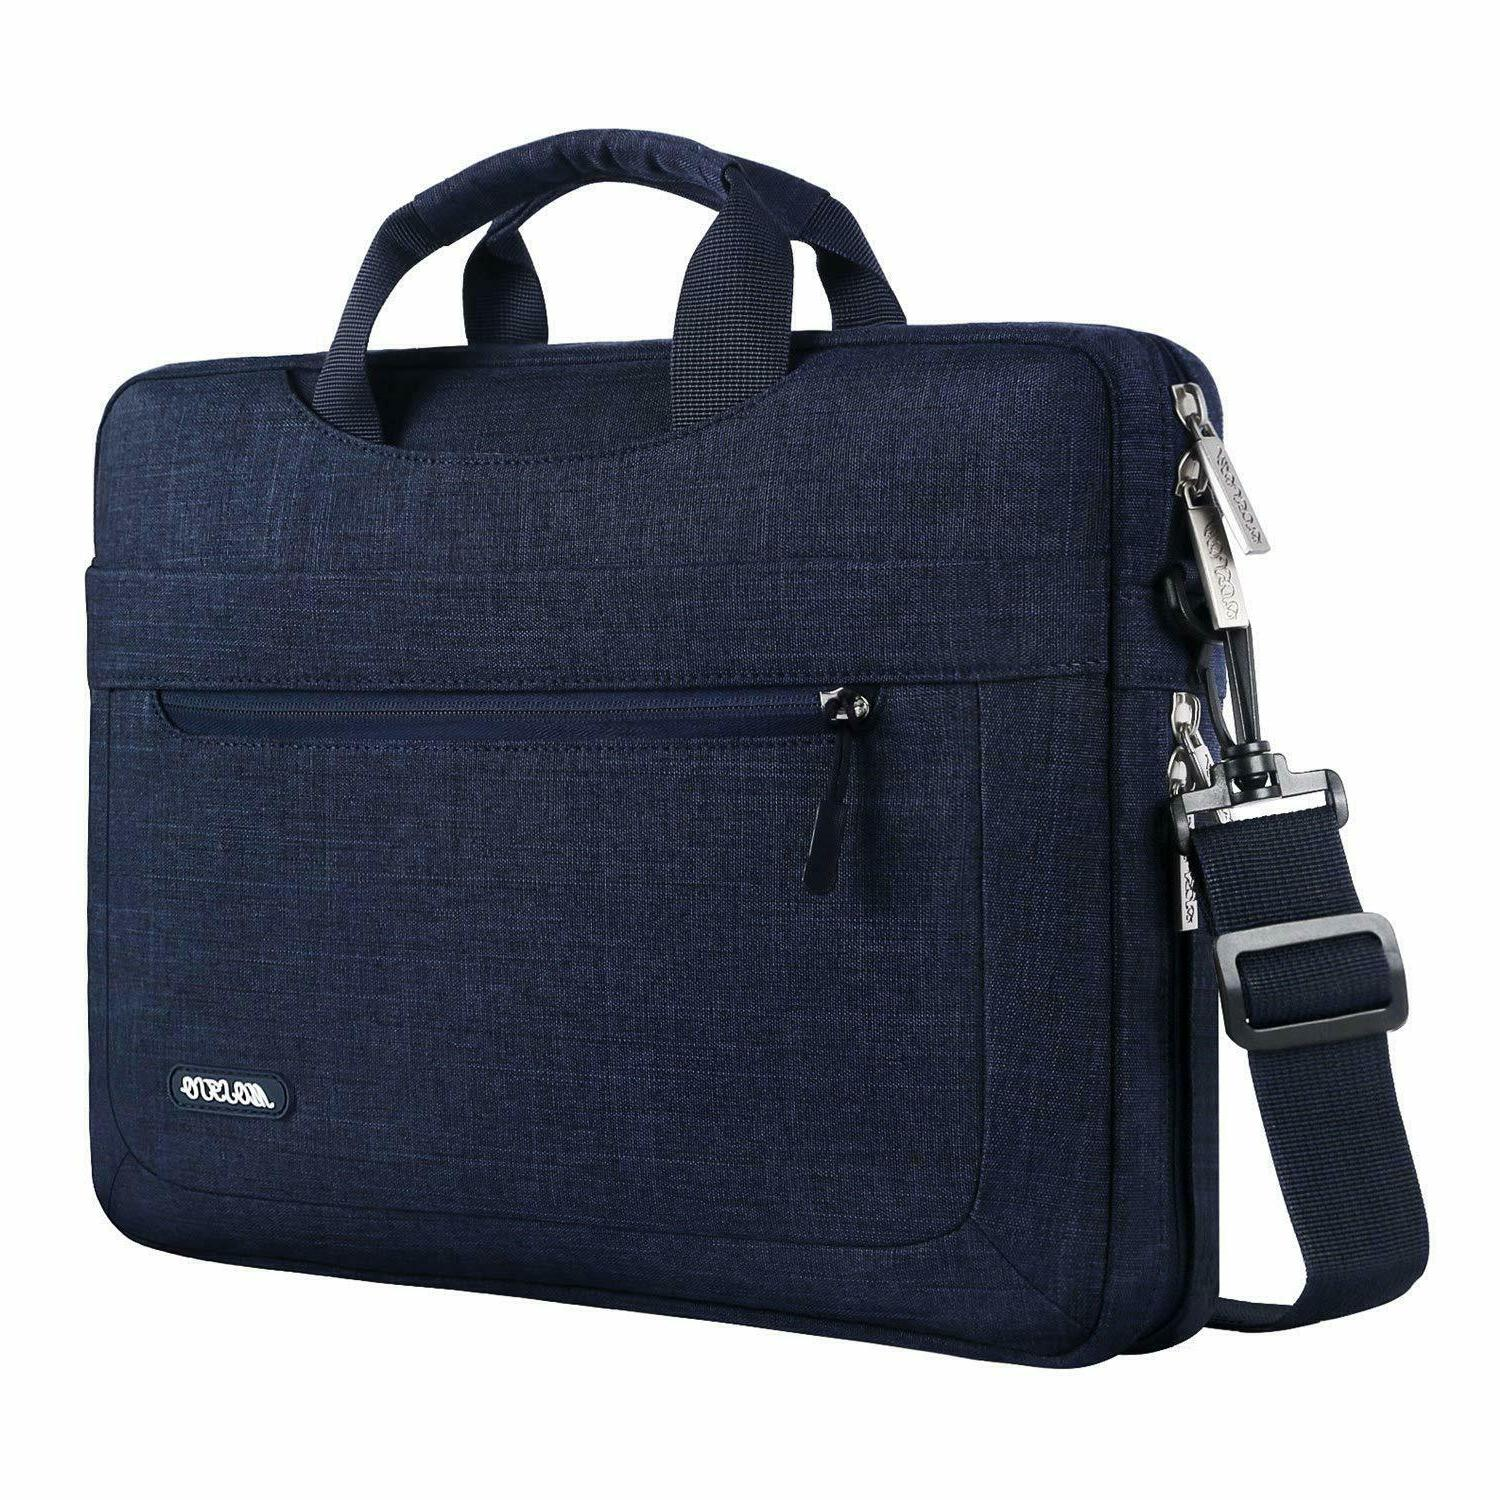 Laptop 17 Bag for Macbook Air Dell